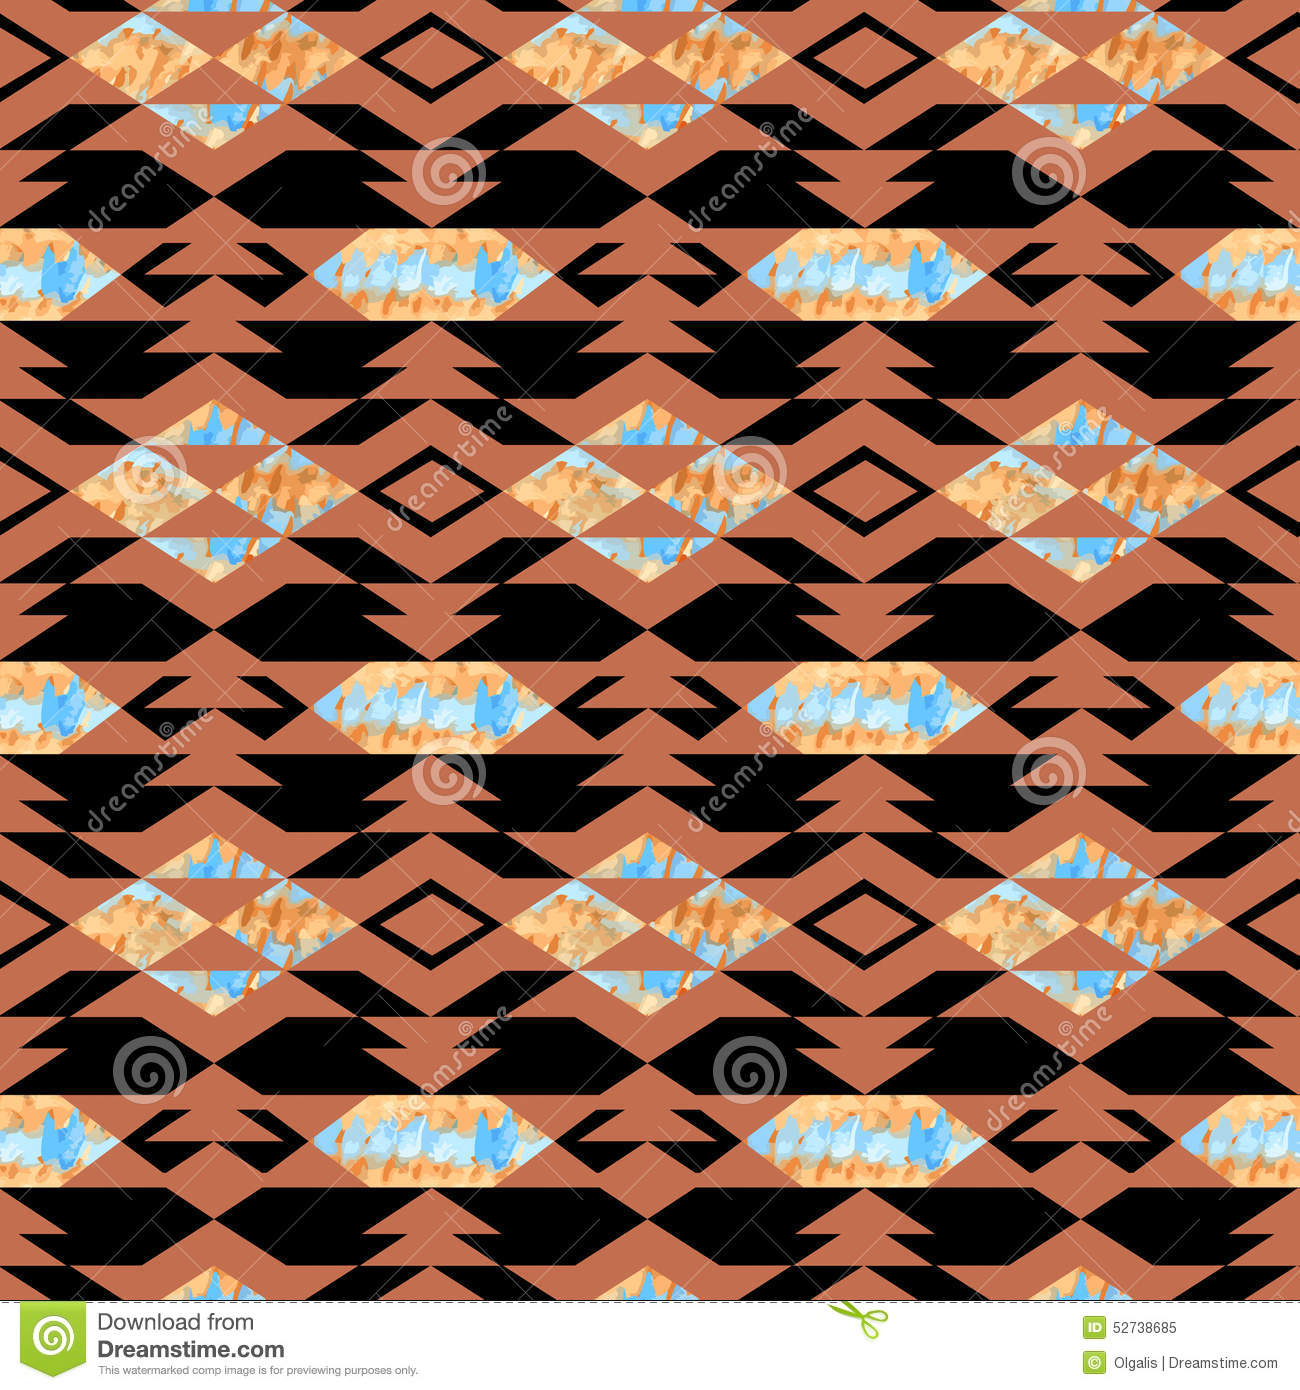 3d Area Rugs Navajo Aztec Textile Inspiration Pattern. Native American ...